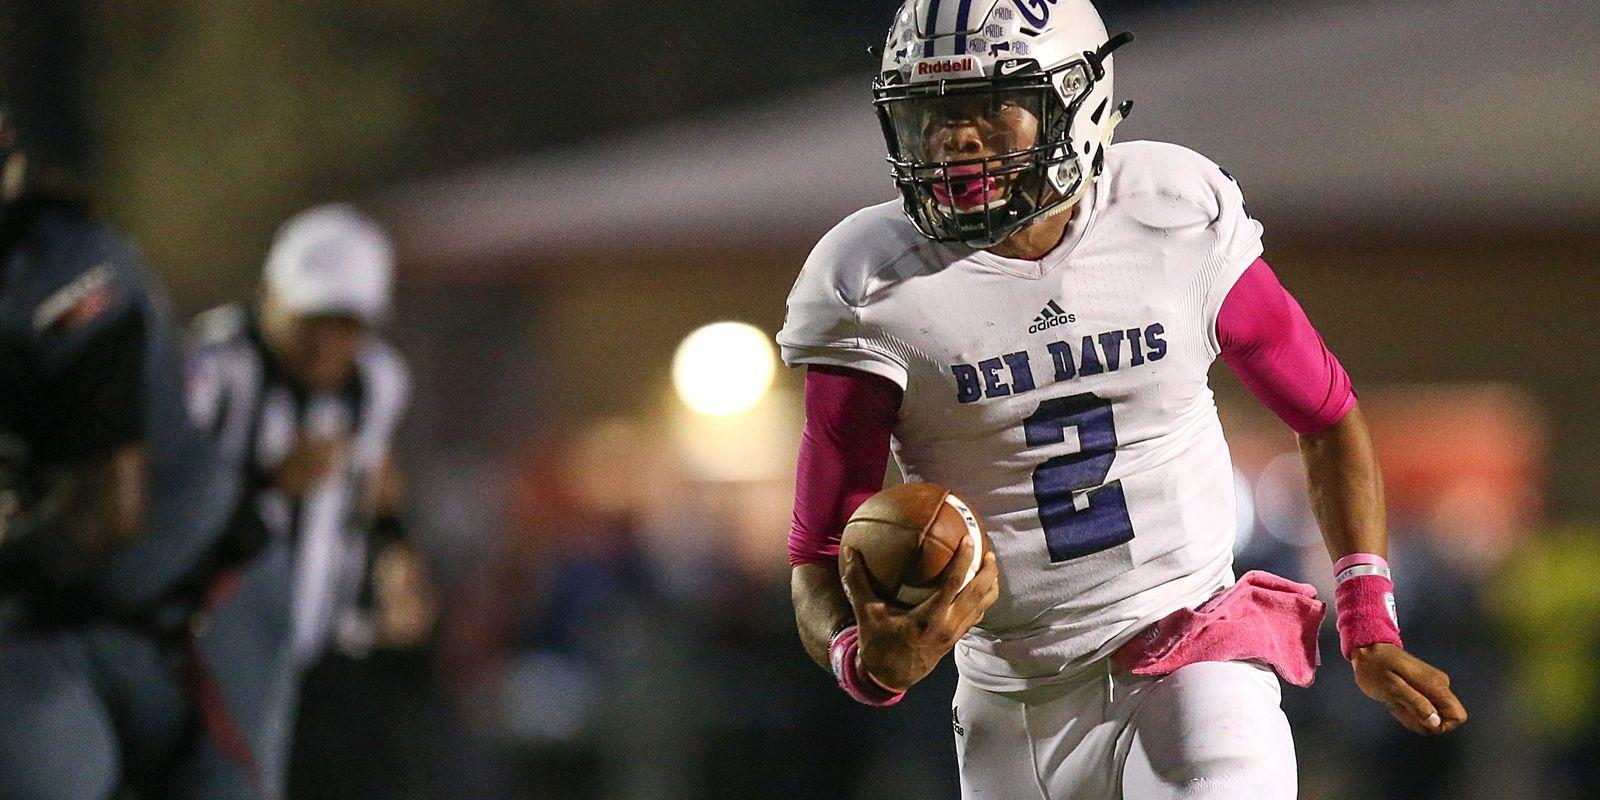 IHSAA football: Can anyone beat Ben Davis? Here are a few candidates